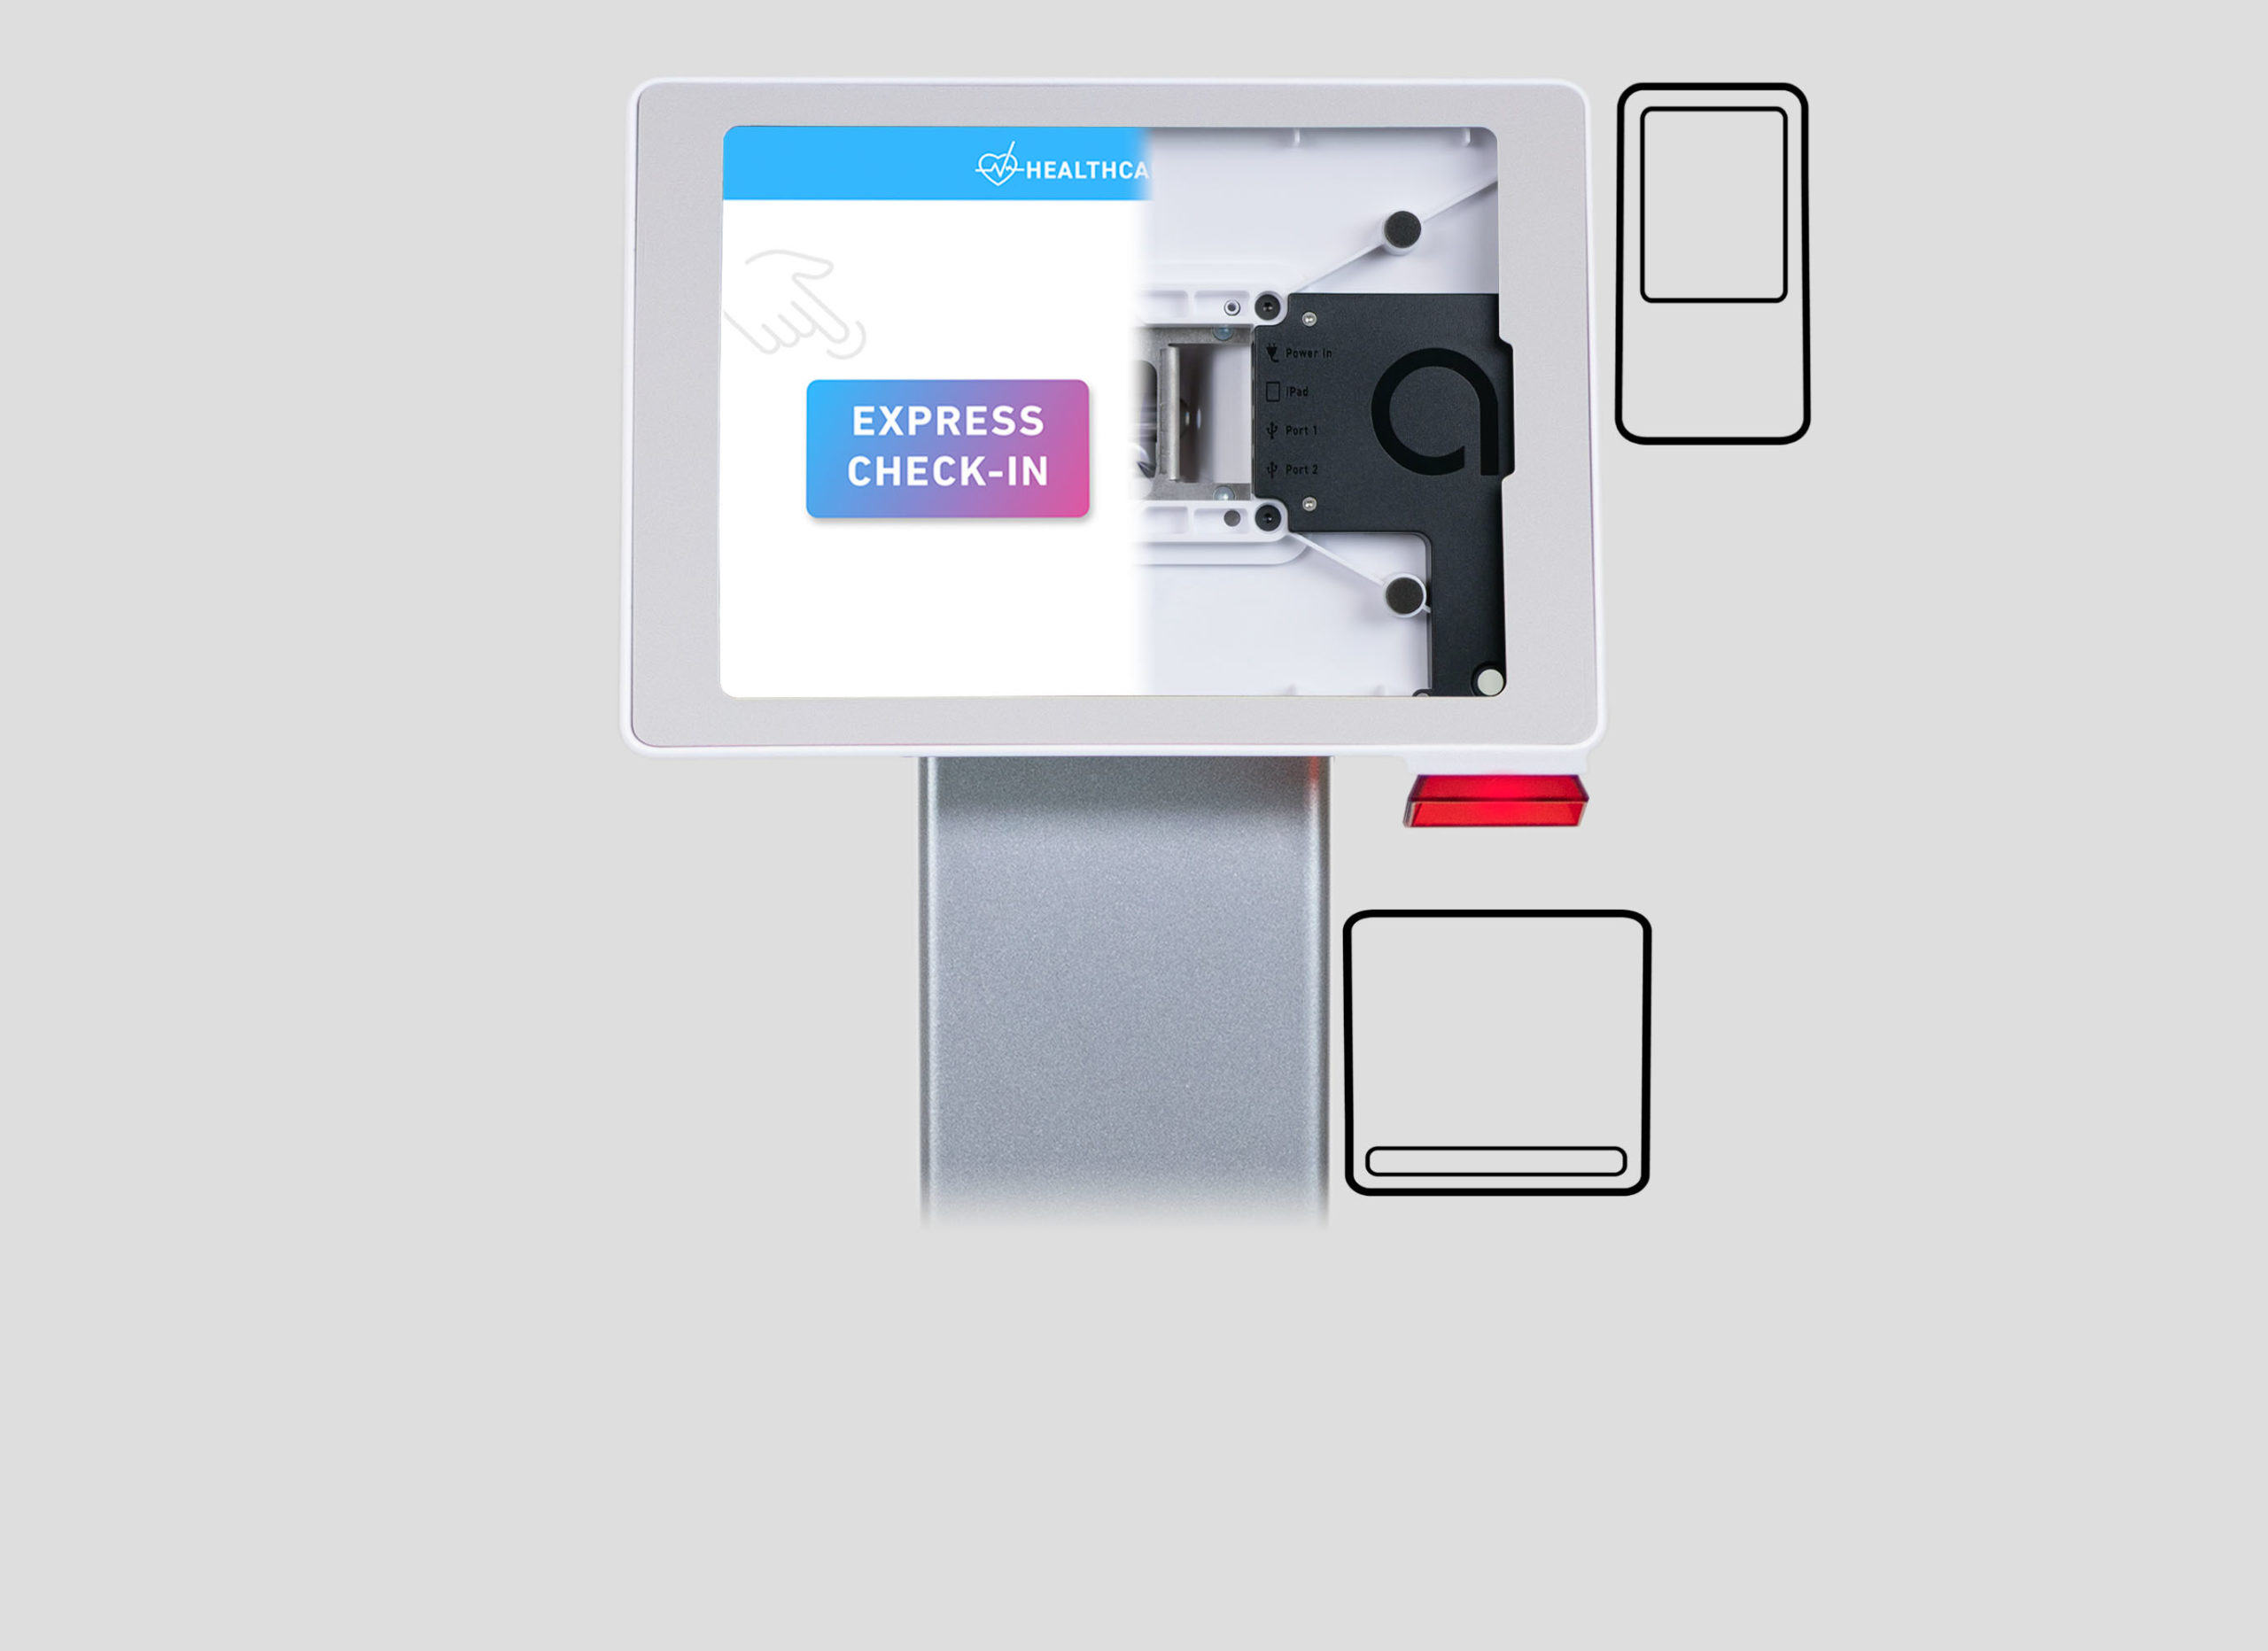 sign-in kiosk peripherals and accessories